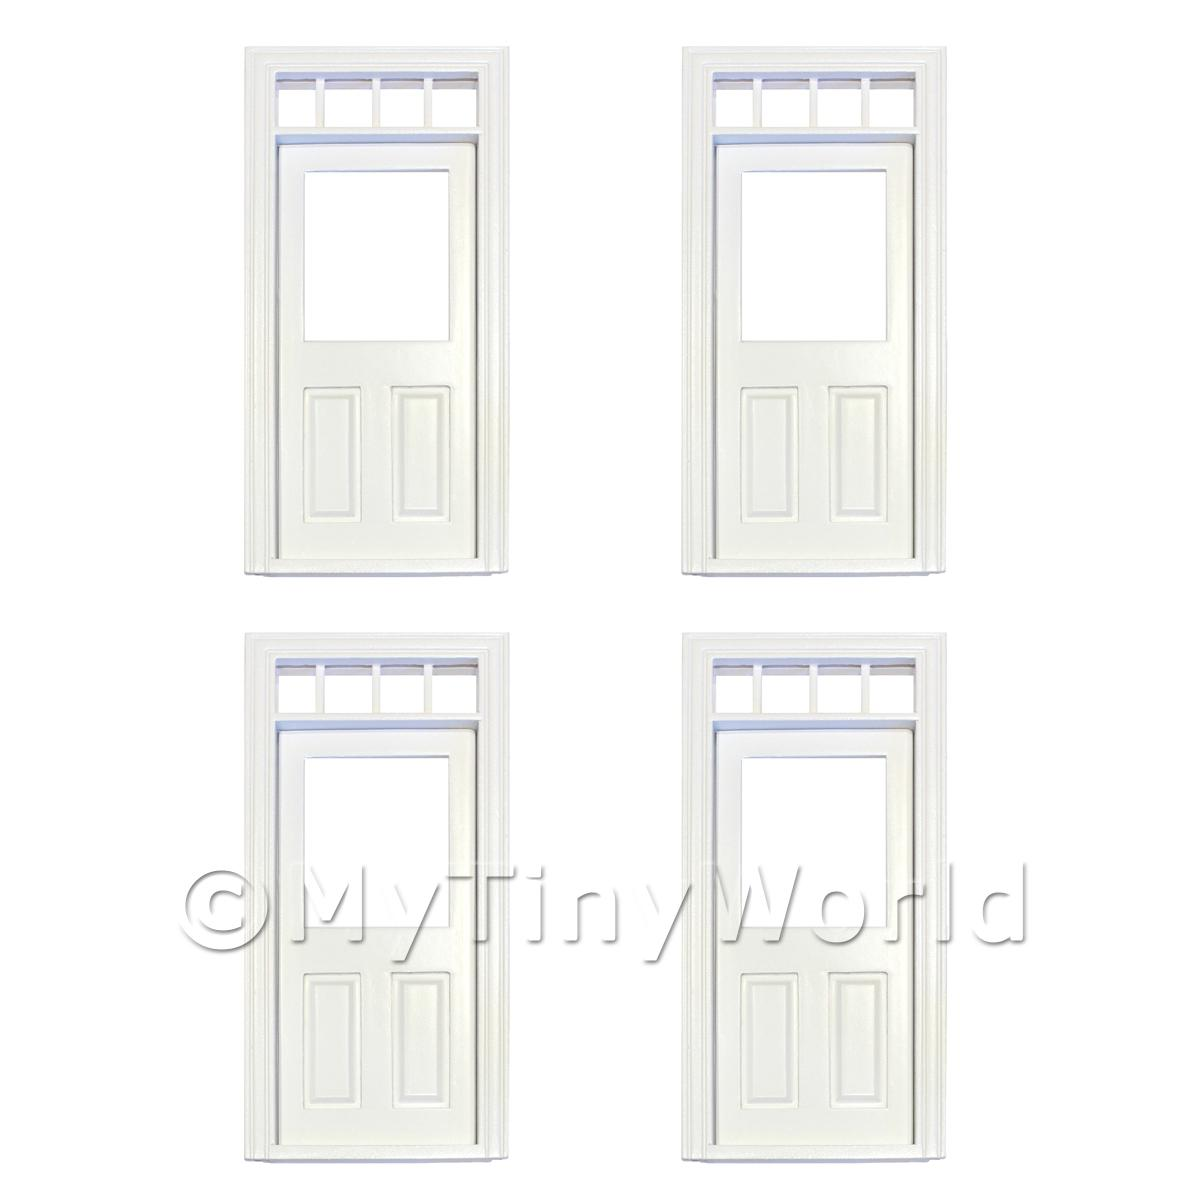 4 x Dolls House Decorative White Door With Glazed Pane And 4 Open Panes